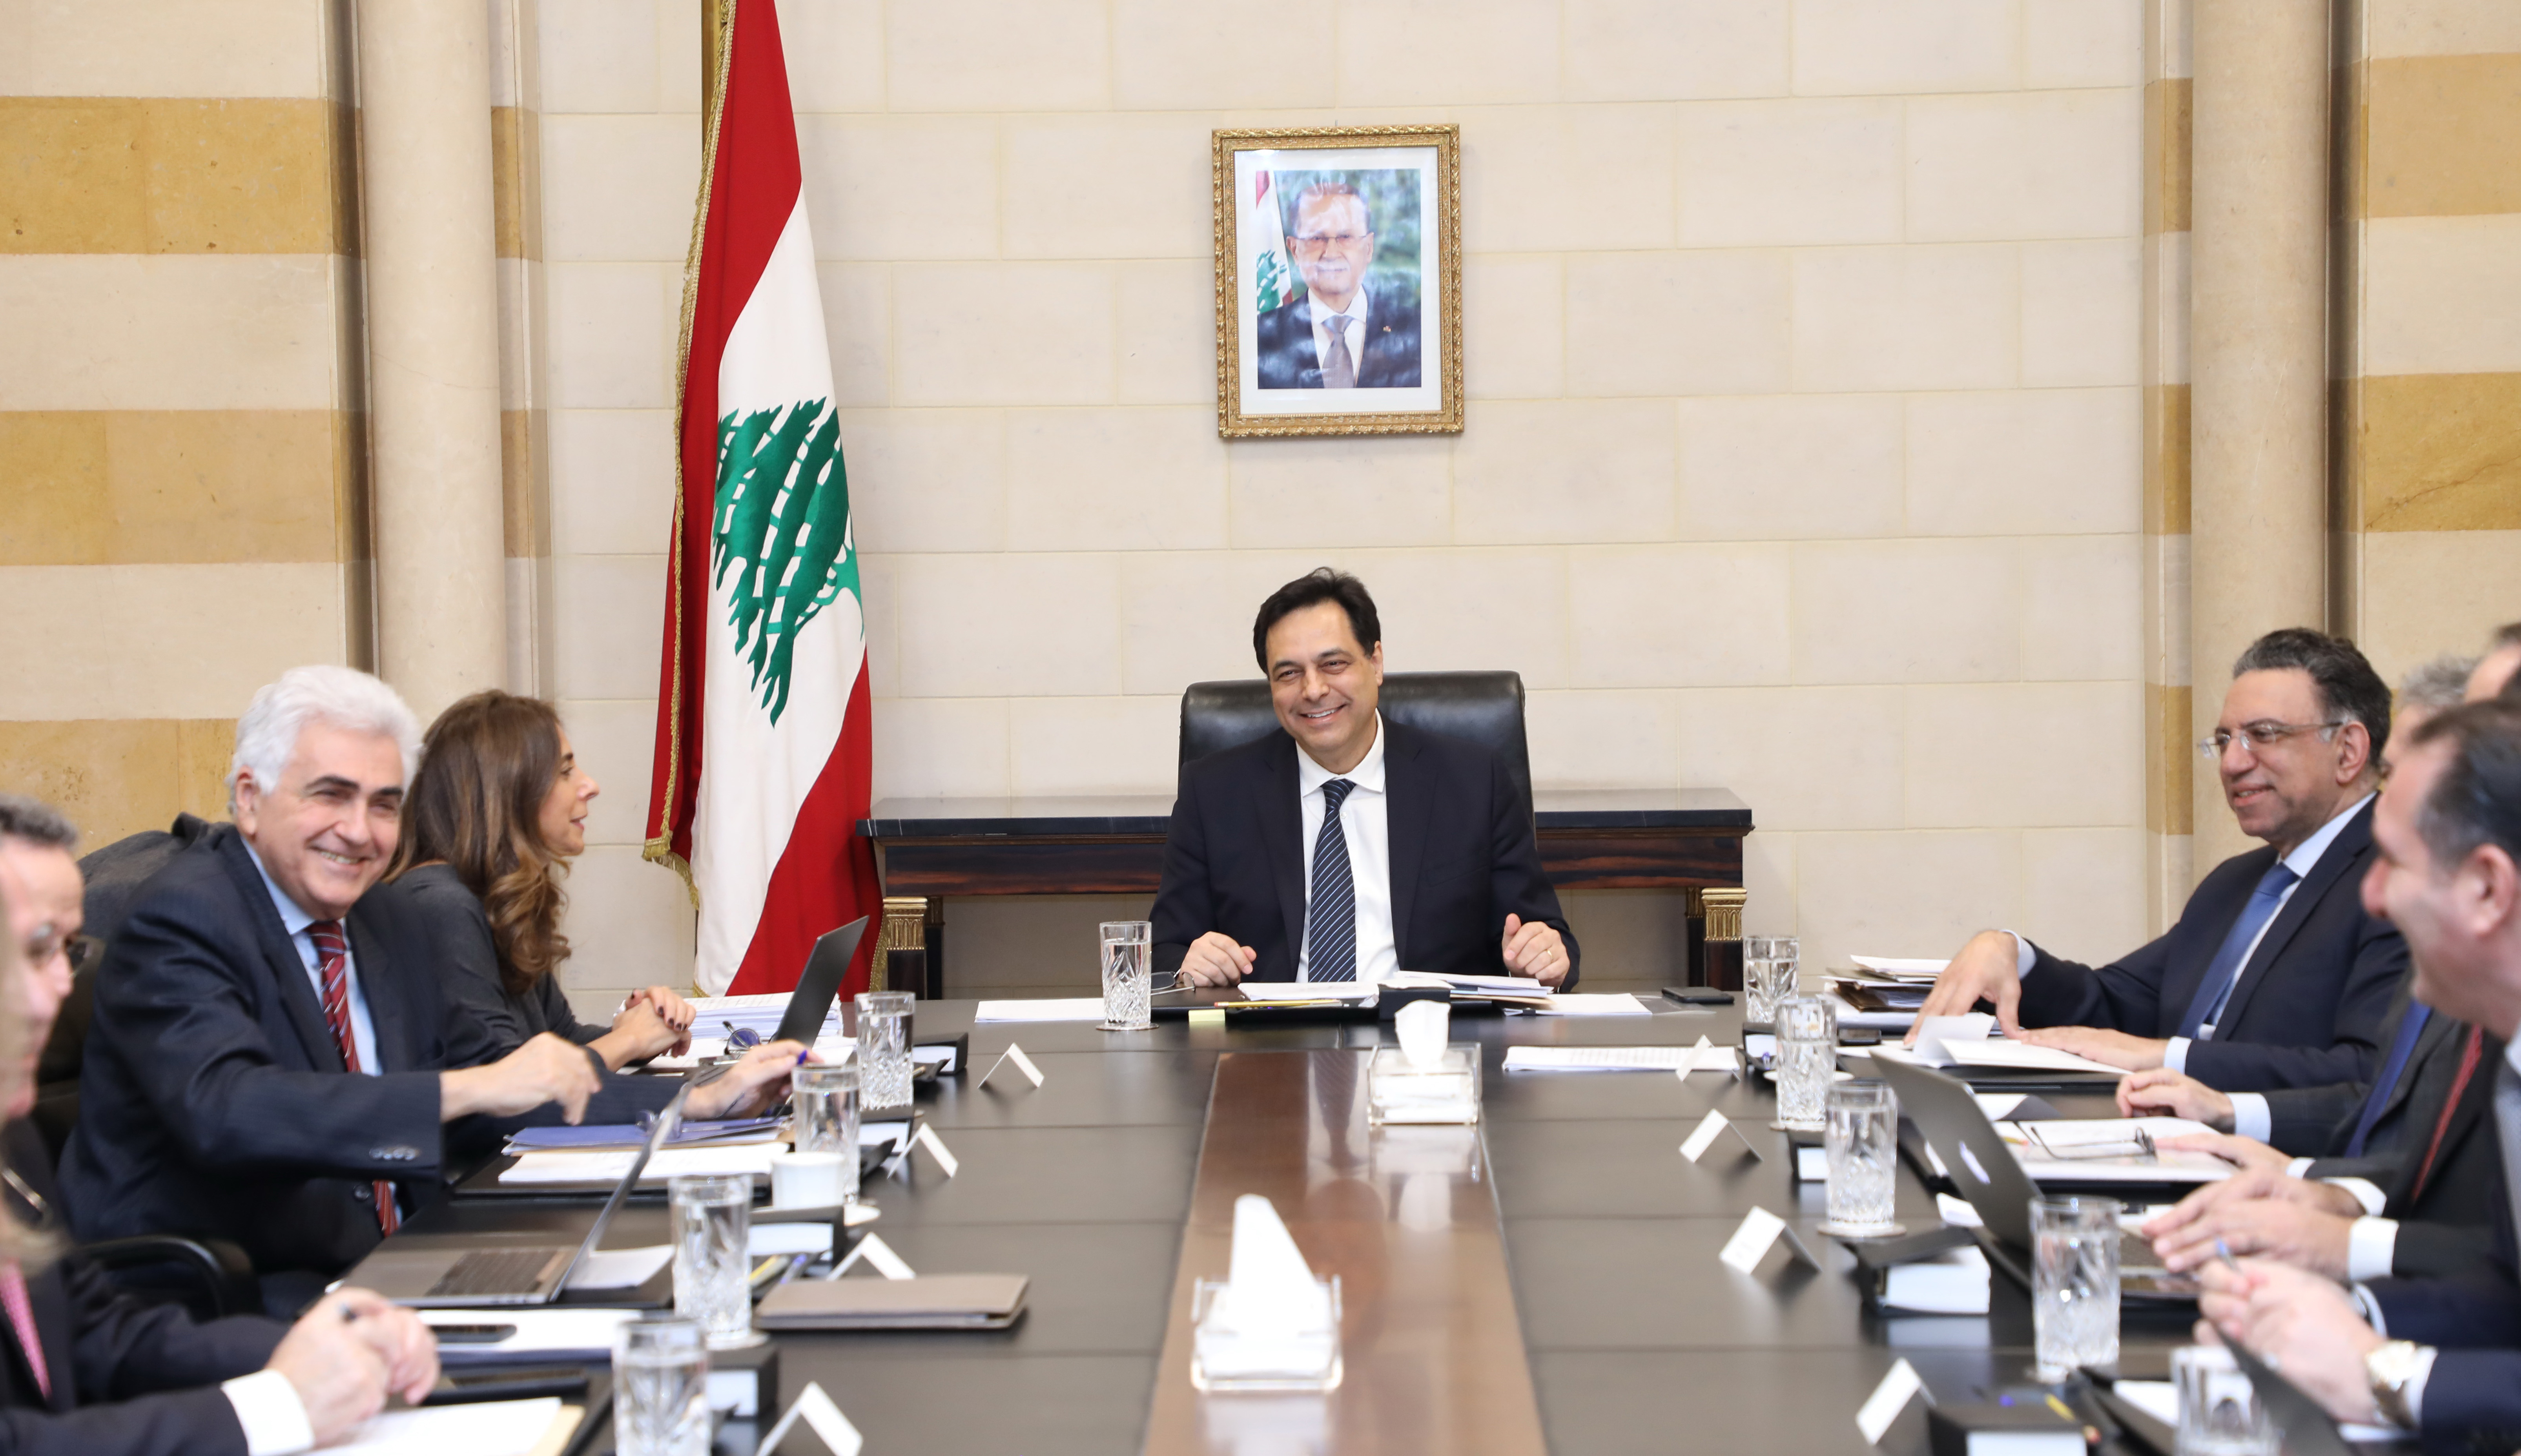 Pr Minister Hassan Diab Heading a Ministerial Council 3